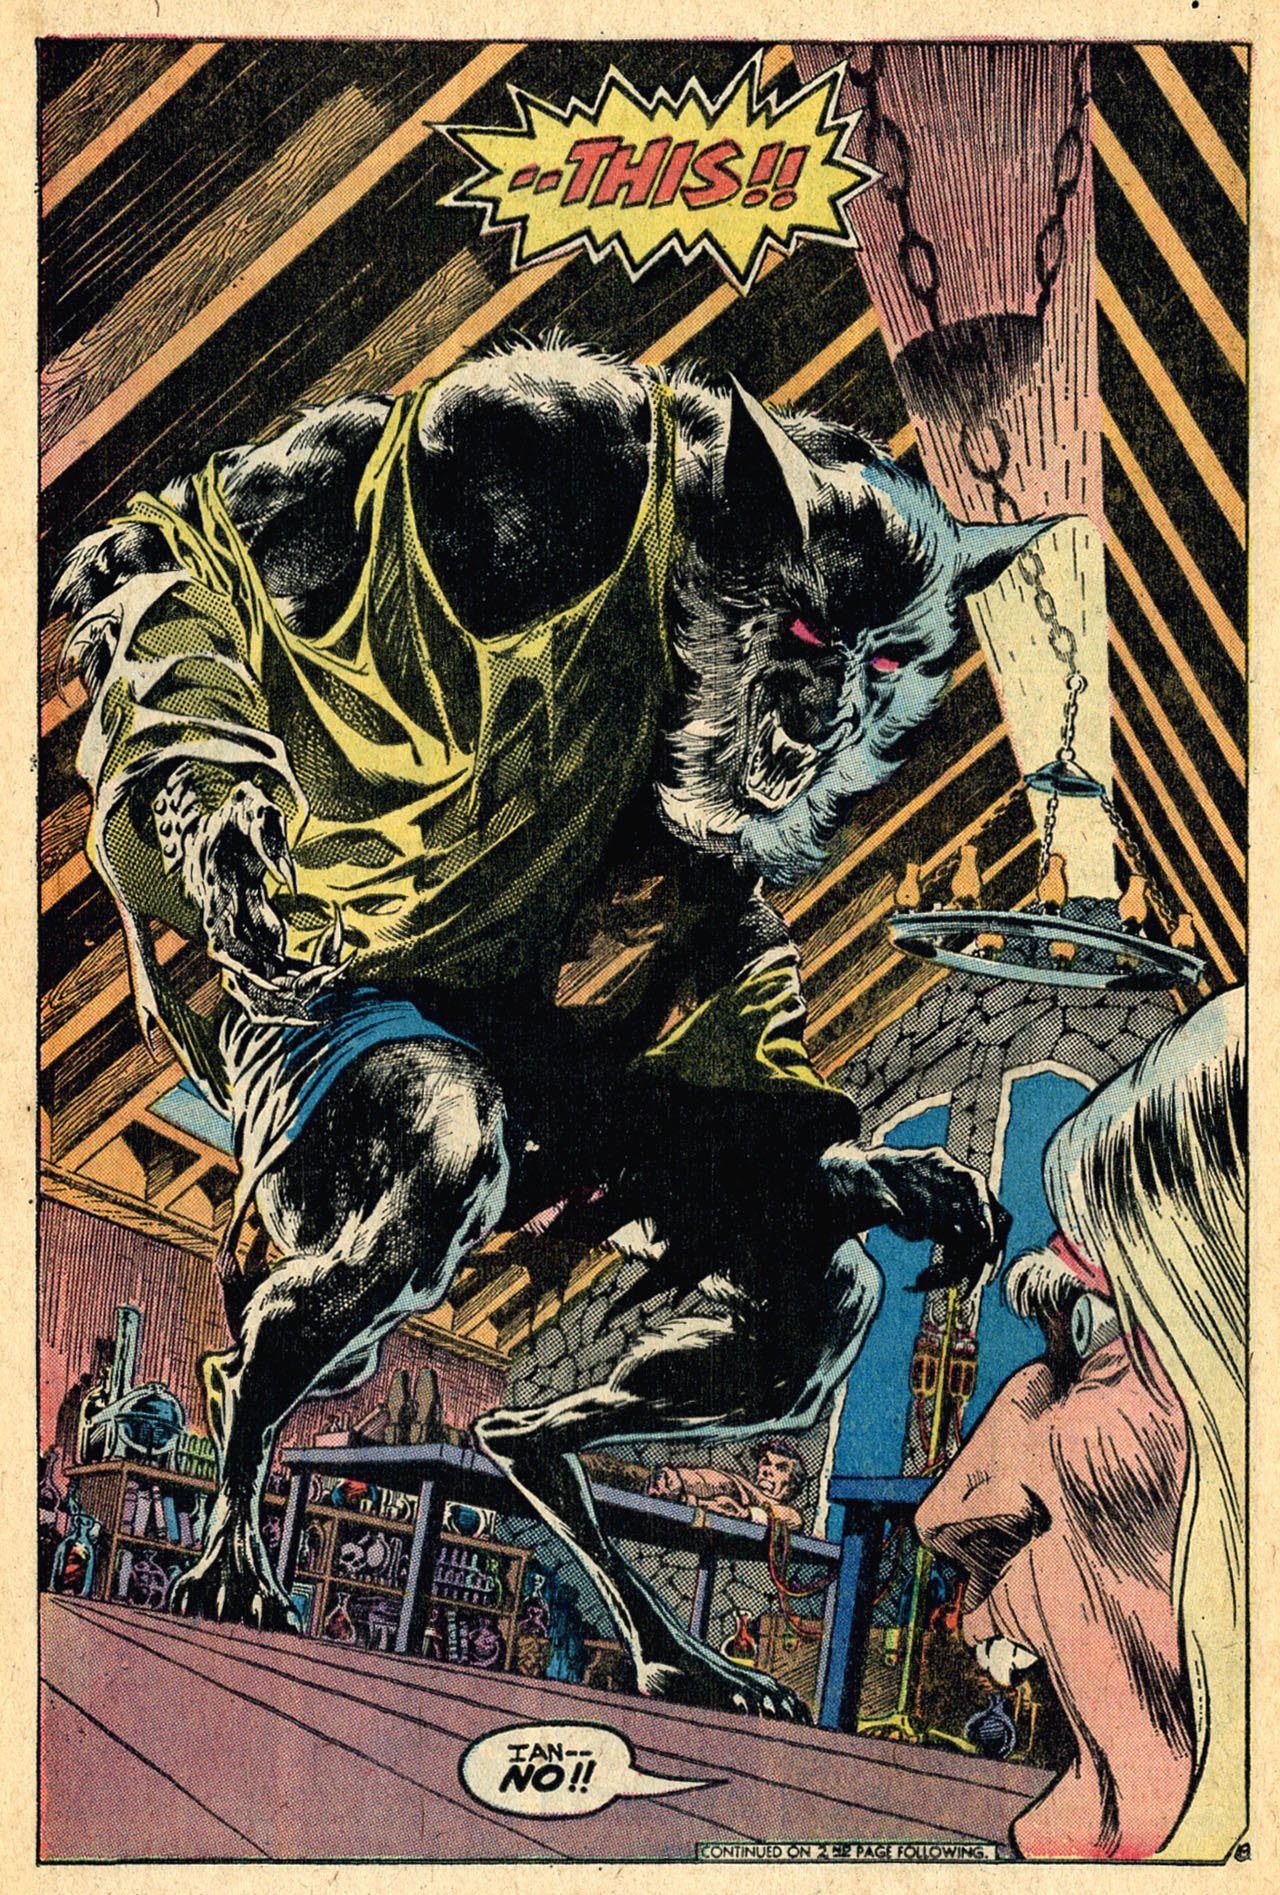 Swamp Thing #5 the legendary werewolf, by Len Wein and Bernie Wrightson